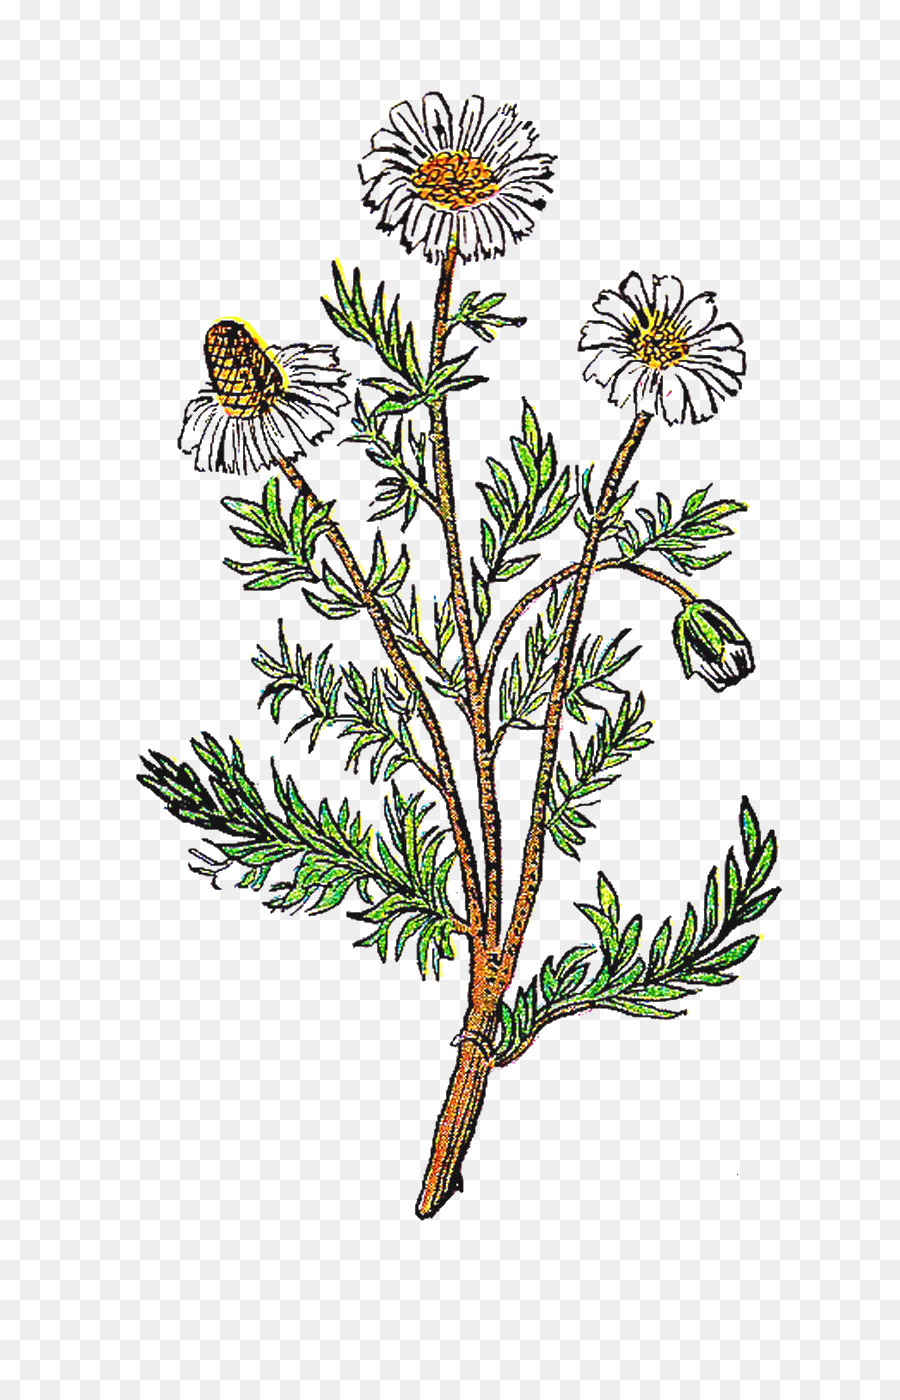 Chamomile clipart picture freeuse library Family Tree Background clipart - Flower, Daisy, Tree, transparent ... picture freeuse library